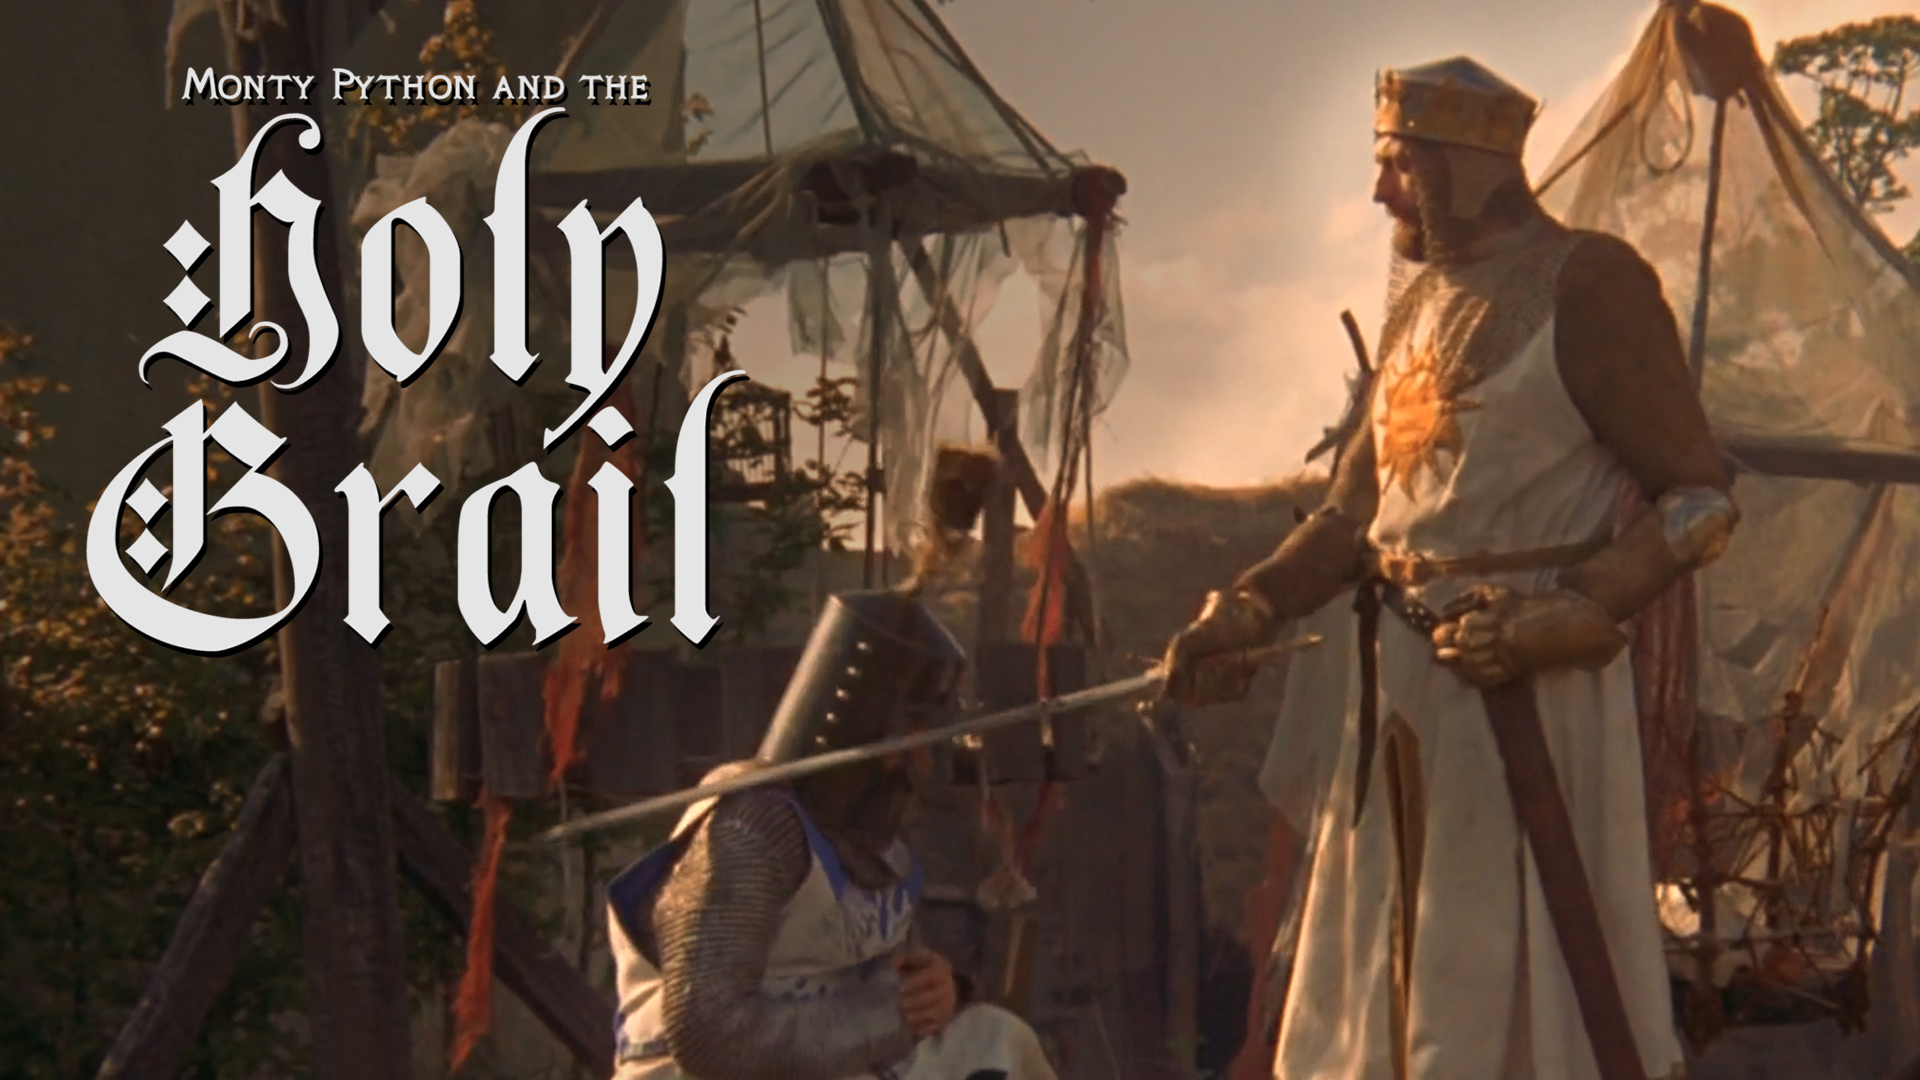 This Recut Trailer Of Monty Python And The Holy Grail Has